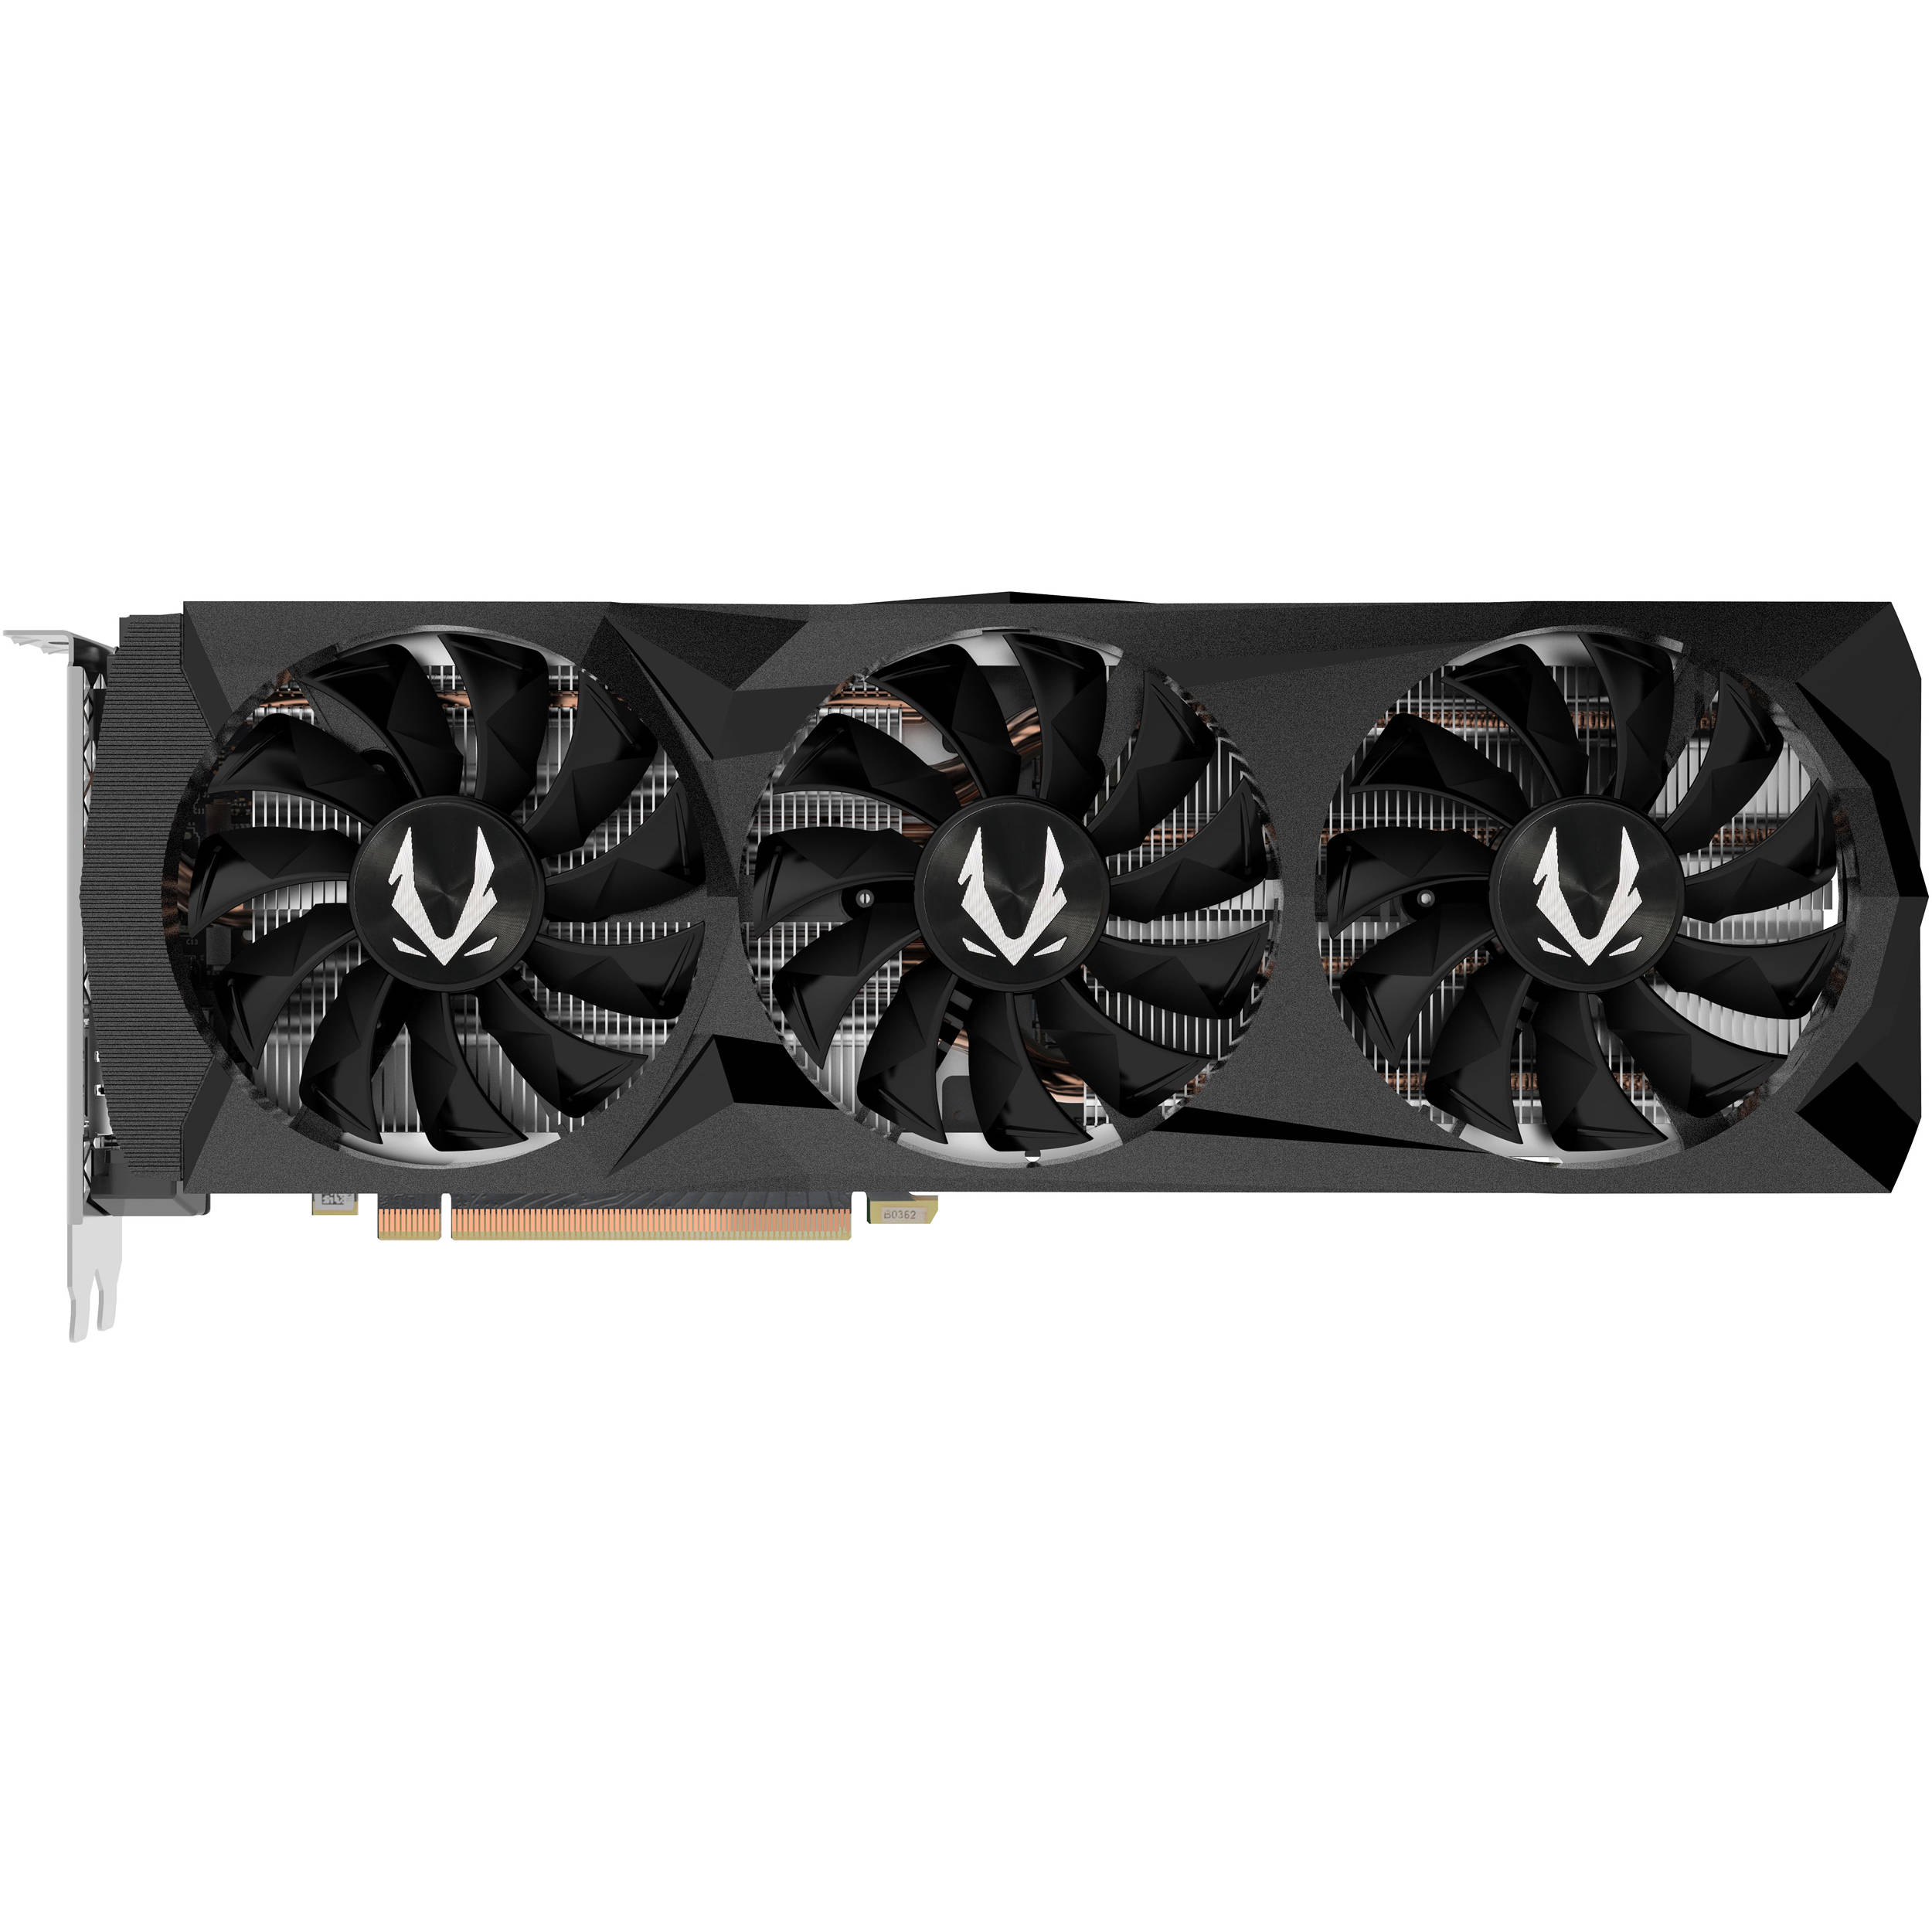 ZOTAC GAMING GeForce RTX 2080 AMP Graphics Card